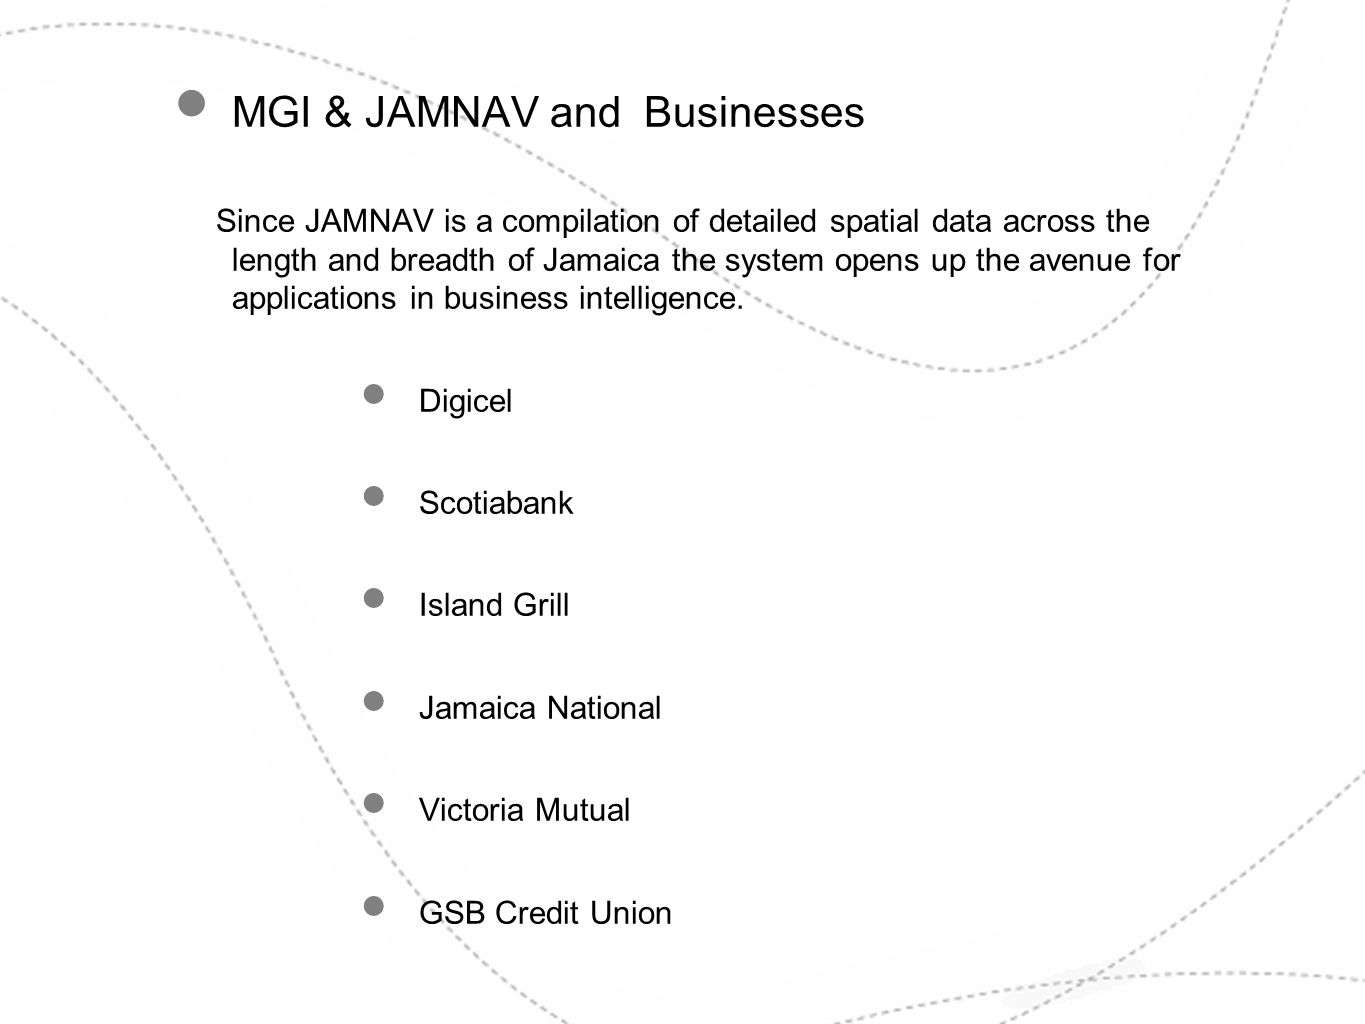 MGI & JAMNAV and Businesses Since JAMNAV is a compilation of detailed spatial data across the length and breadth of Jamaica the system opens up the av